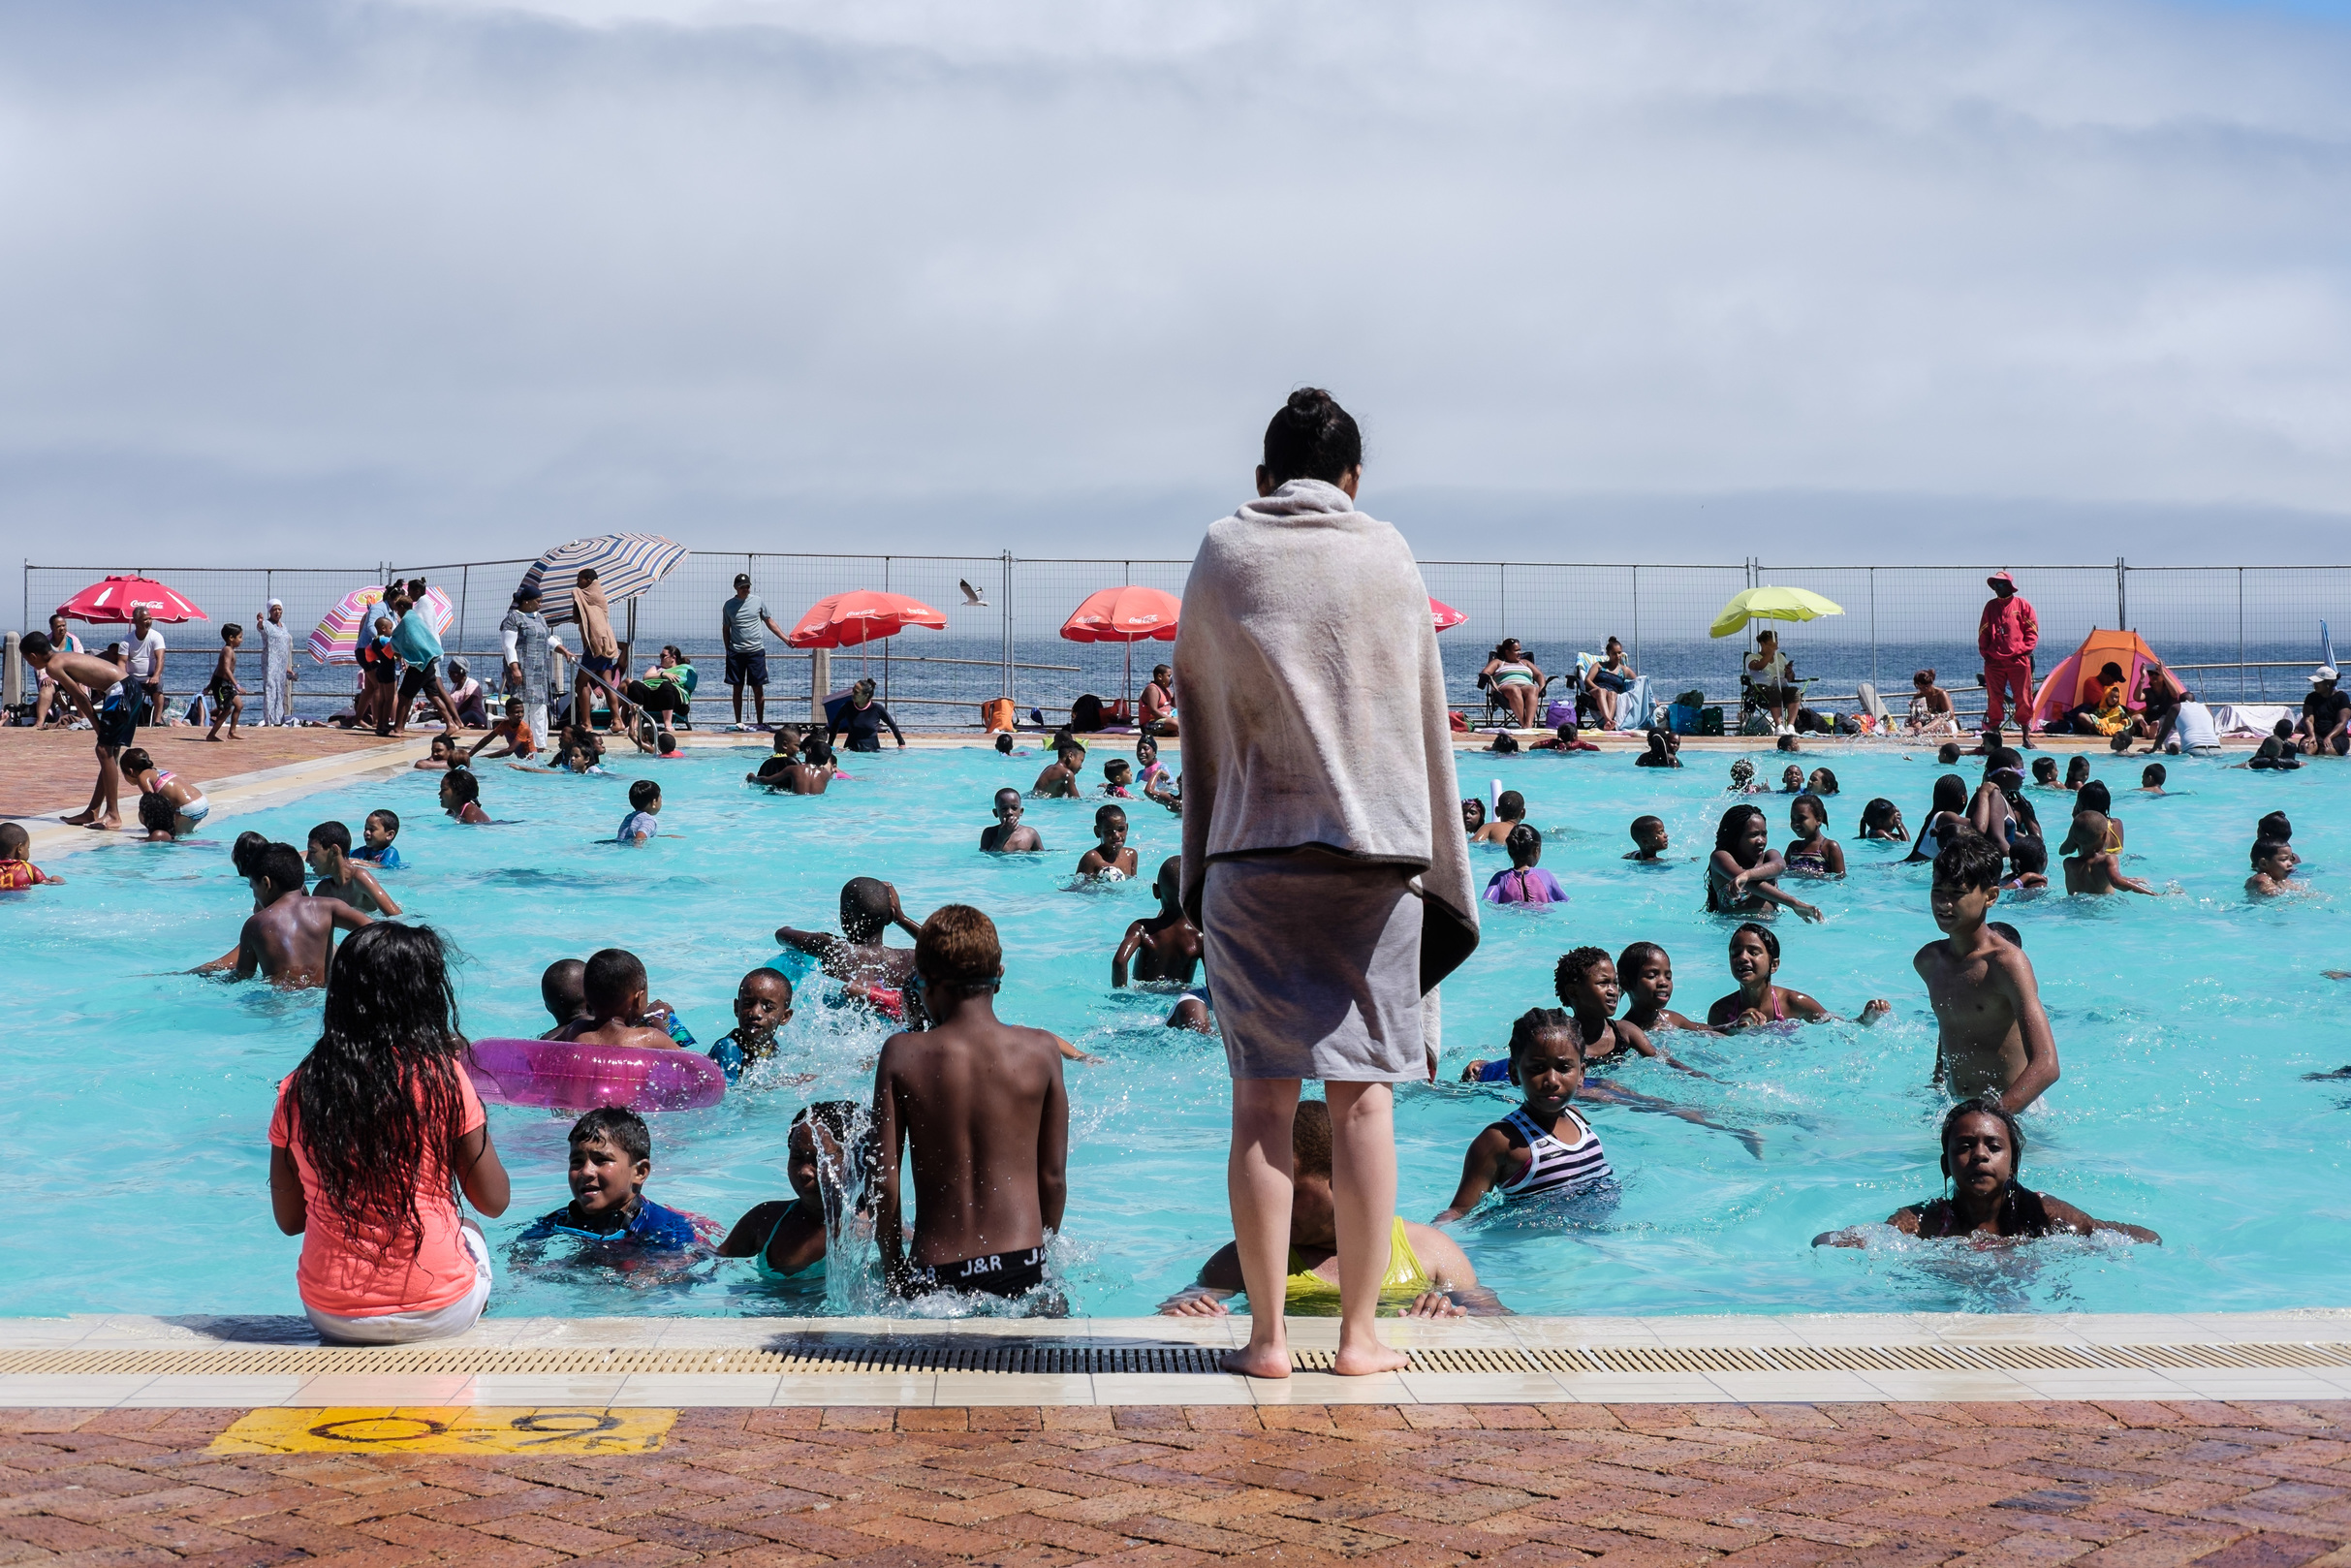 Photo Of People Swimming In Sea Point Pavilion